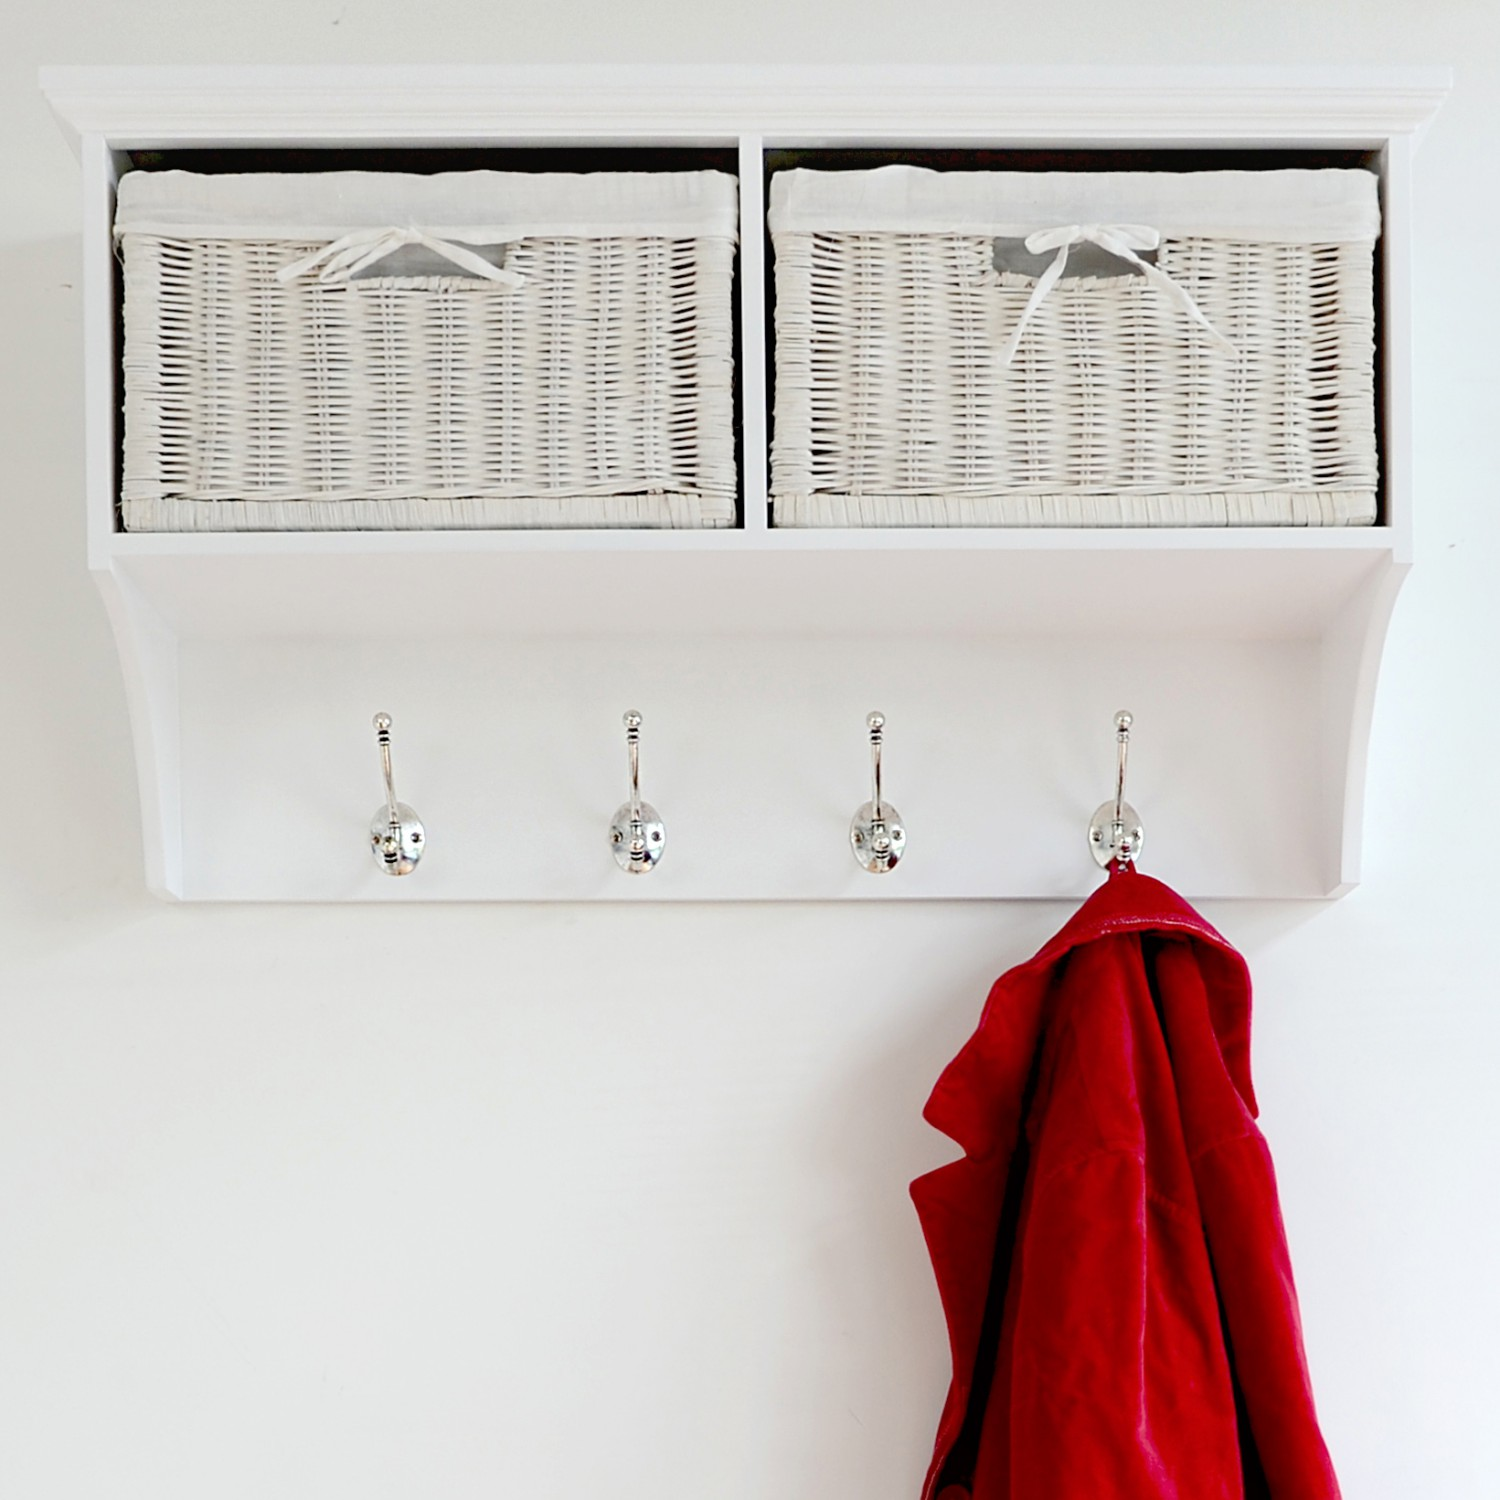 tetbury white coat rack with storage baskets, hallway hanging, Moderne deko